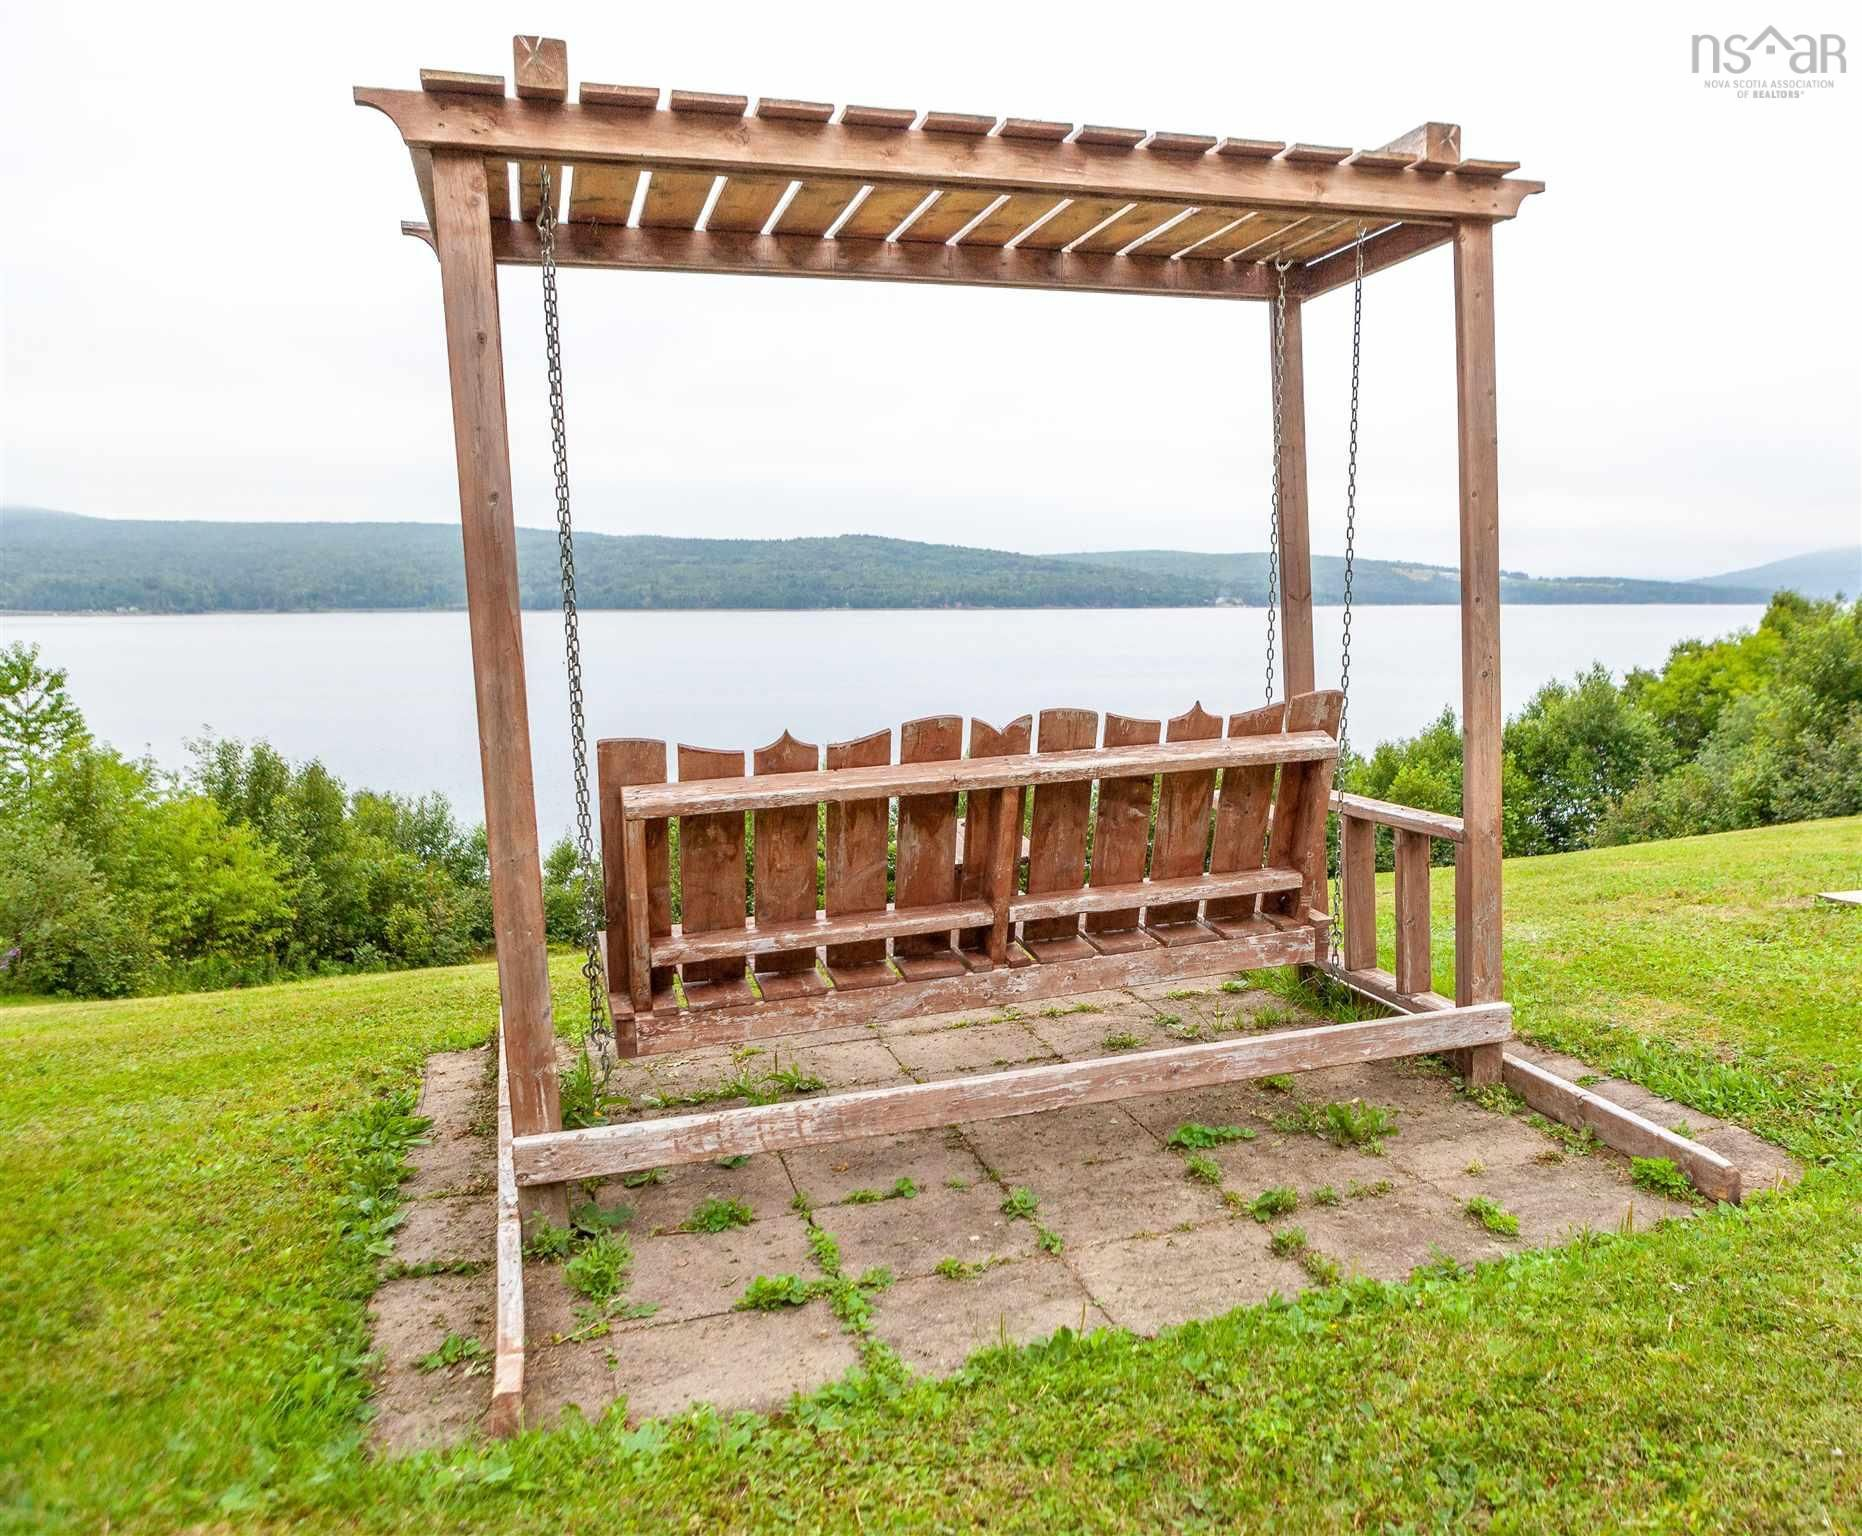 Photo 7: Photos: 3836 Highway 105 in South Haven: 209-Victoria County / Baddeck Residential for sale (Cape Breton)  : MLS®# 202120821